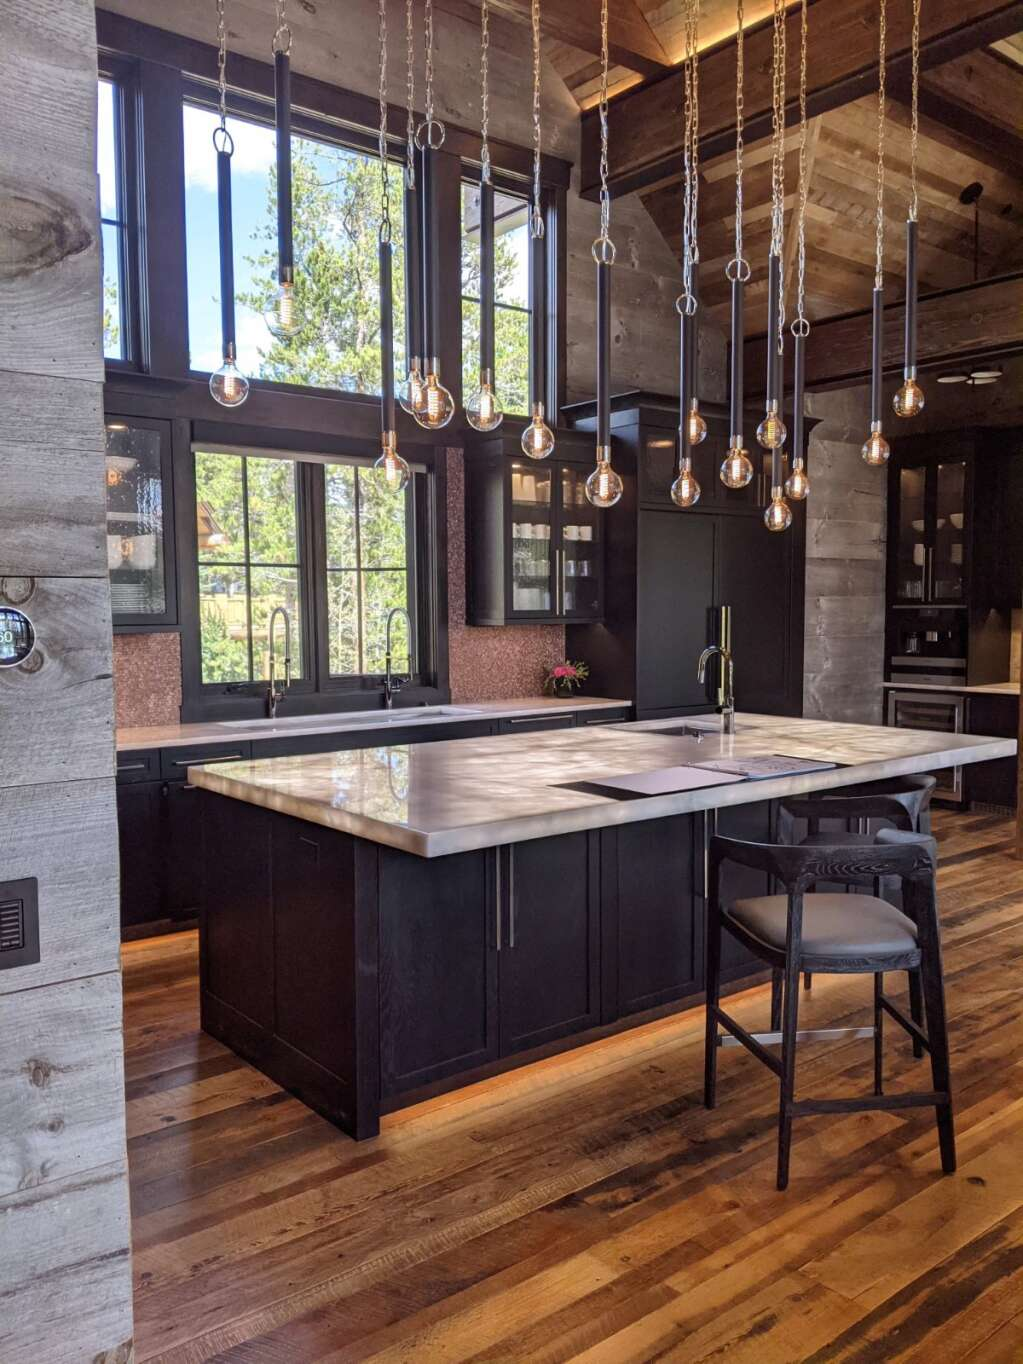 The 2021 Parade of Homes' Mountain Living Peak Award winner was built by The Pinnacle Companies in Breckenridge. The event raised $45,000 for The Summit Foundation in 2019.   Summit County Builders Association/Courtesy photo